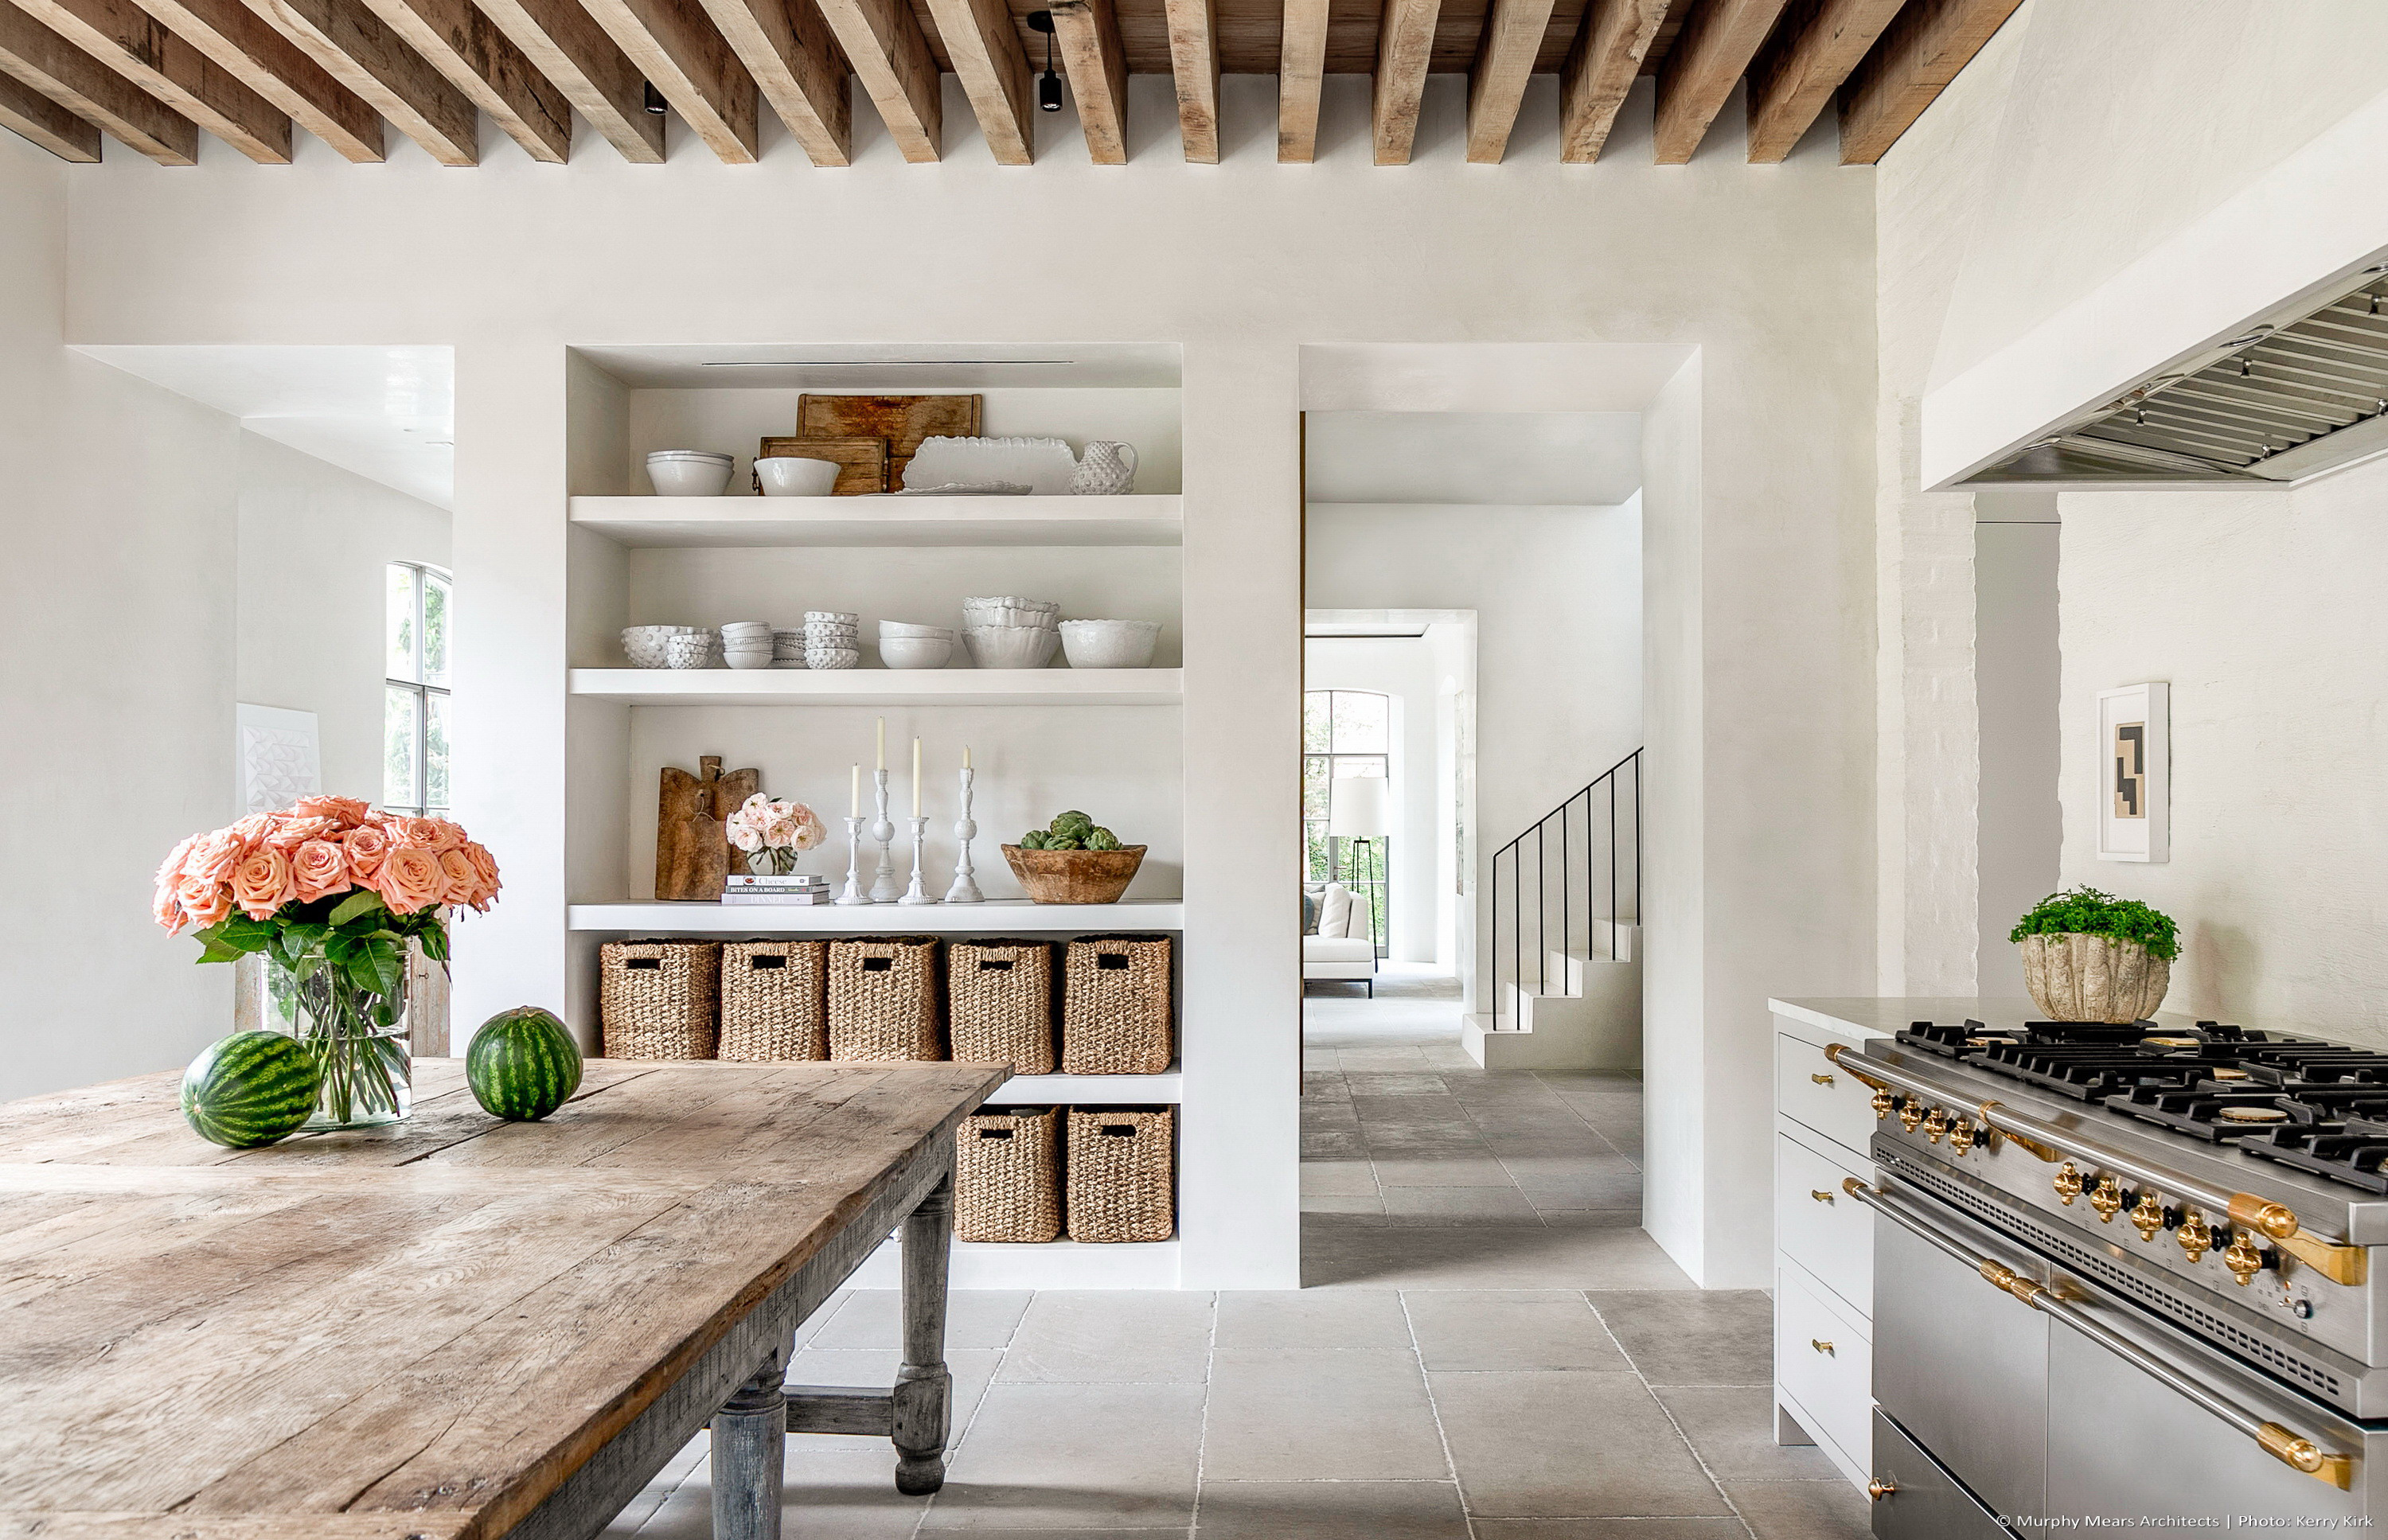 Kitchen with a central farm table, lacanche range, and load-bearing wood ceiling structure above.